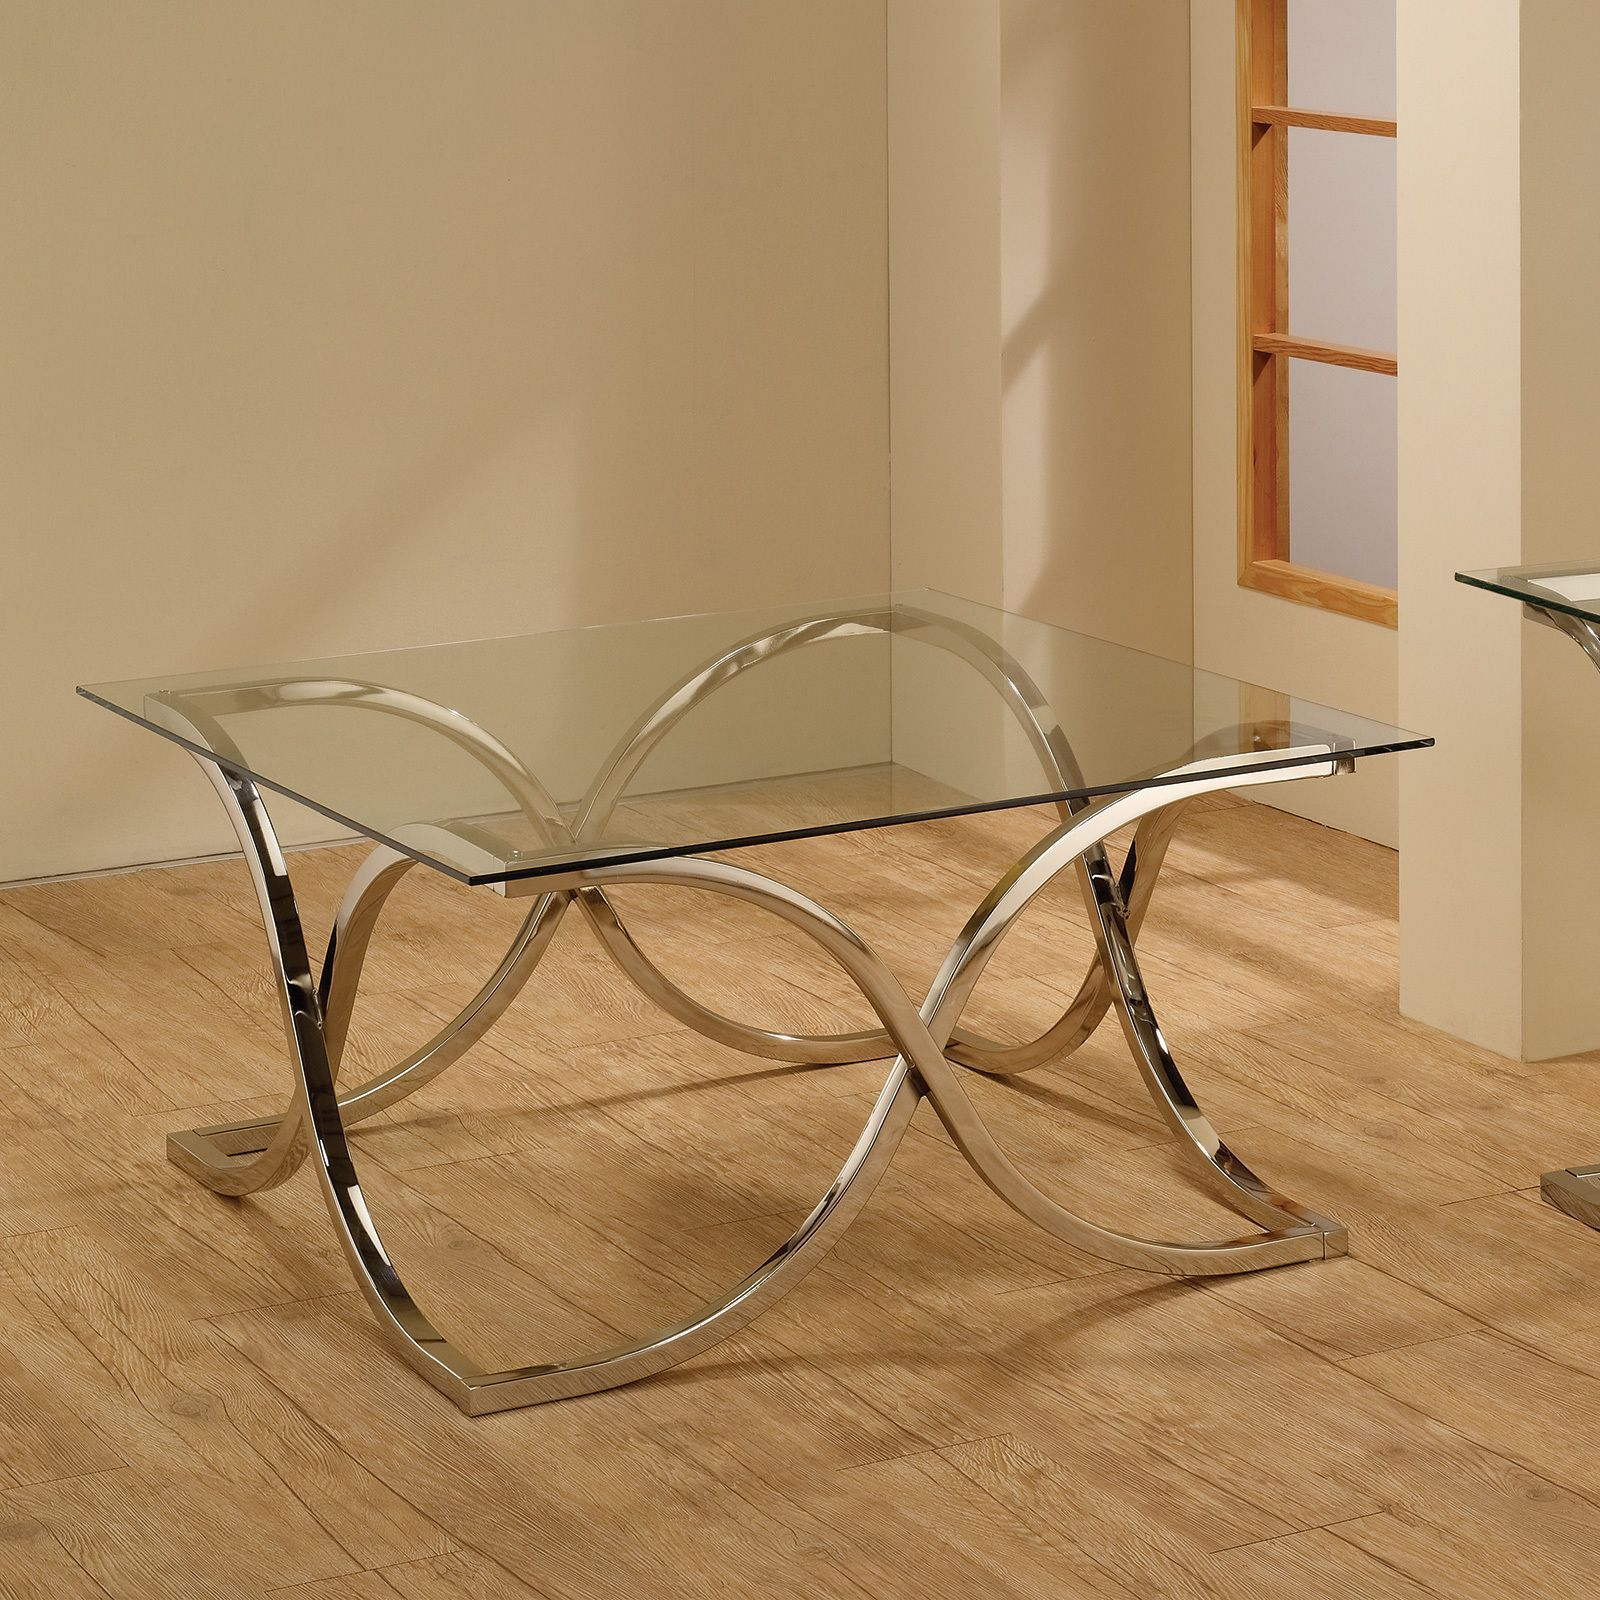 Coaster Company Chrome Tempered Glass Coffee Table (chrome Regarding 2020 Coaster Company Silver Glass Coffee Tables (View 5 of 20)